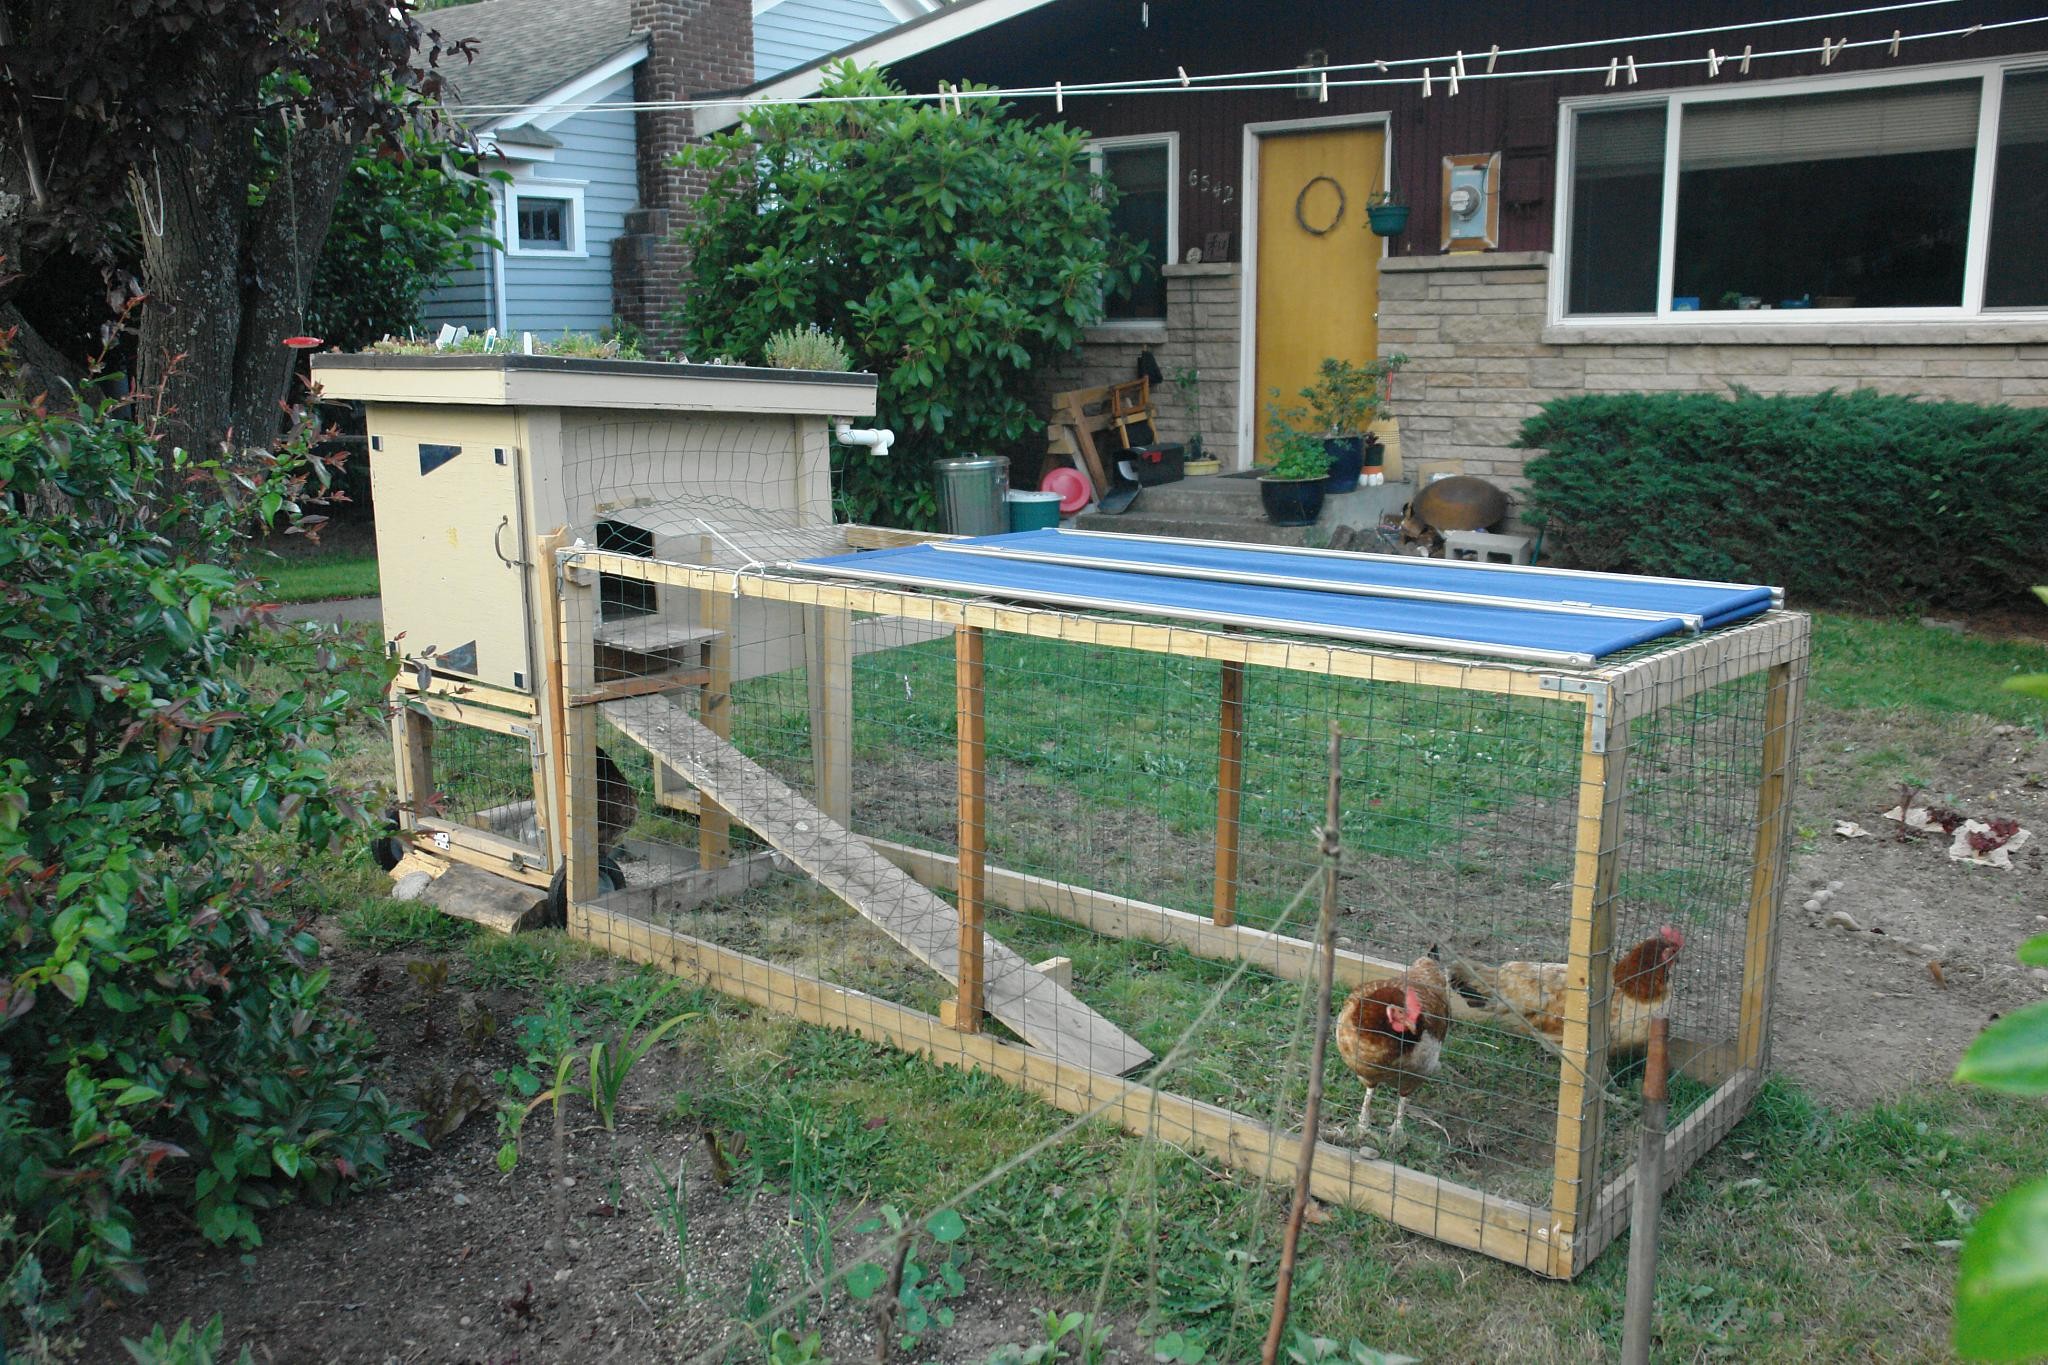 Best ideas about Backyard Chicken Coop . Save or Pin 301 Moved Permanently Now.